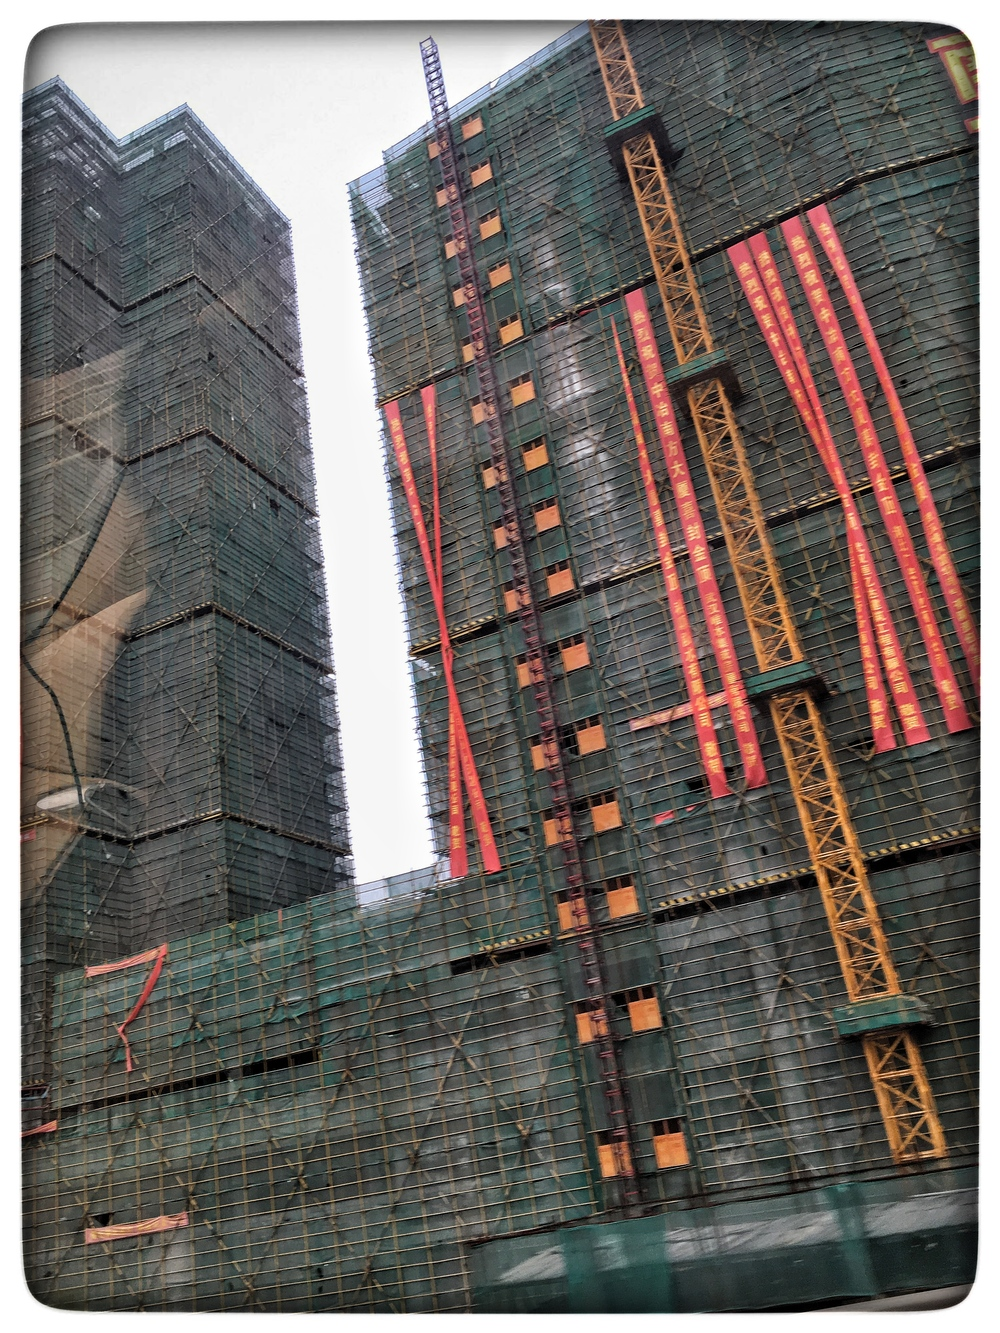 Unfinished buildings, Wuhan